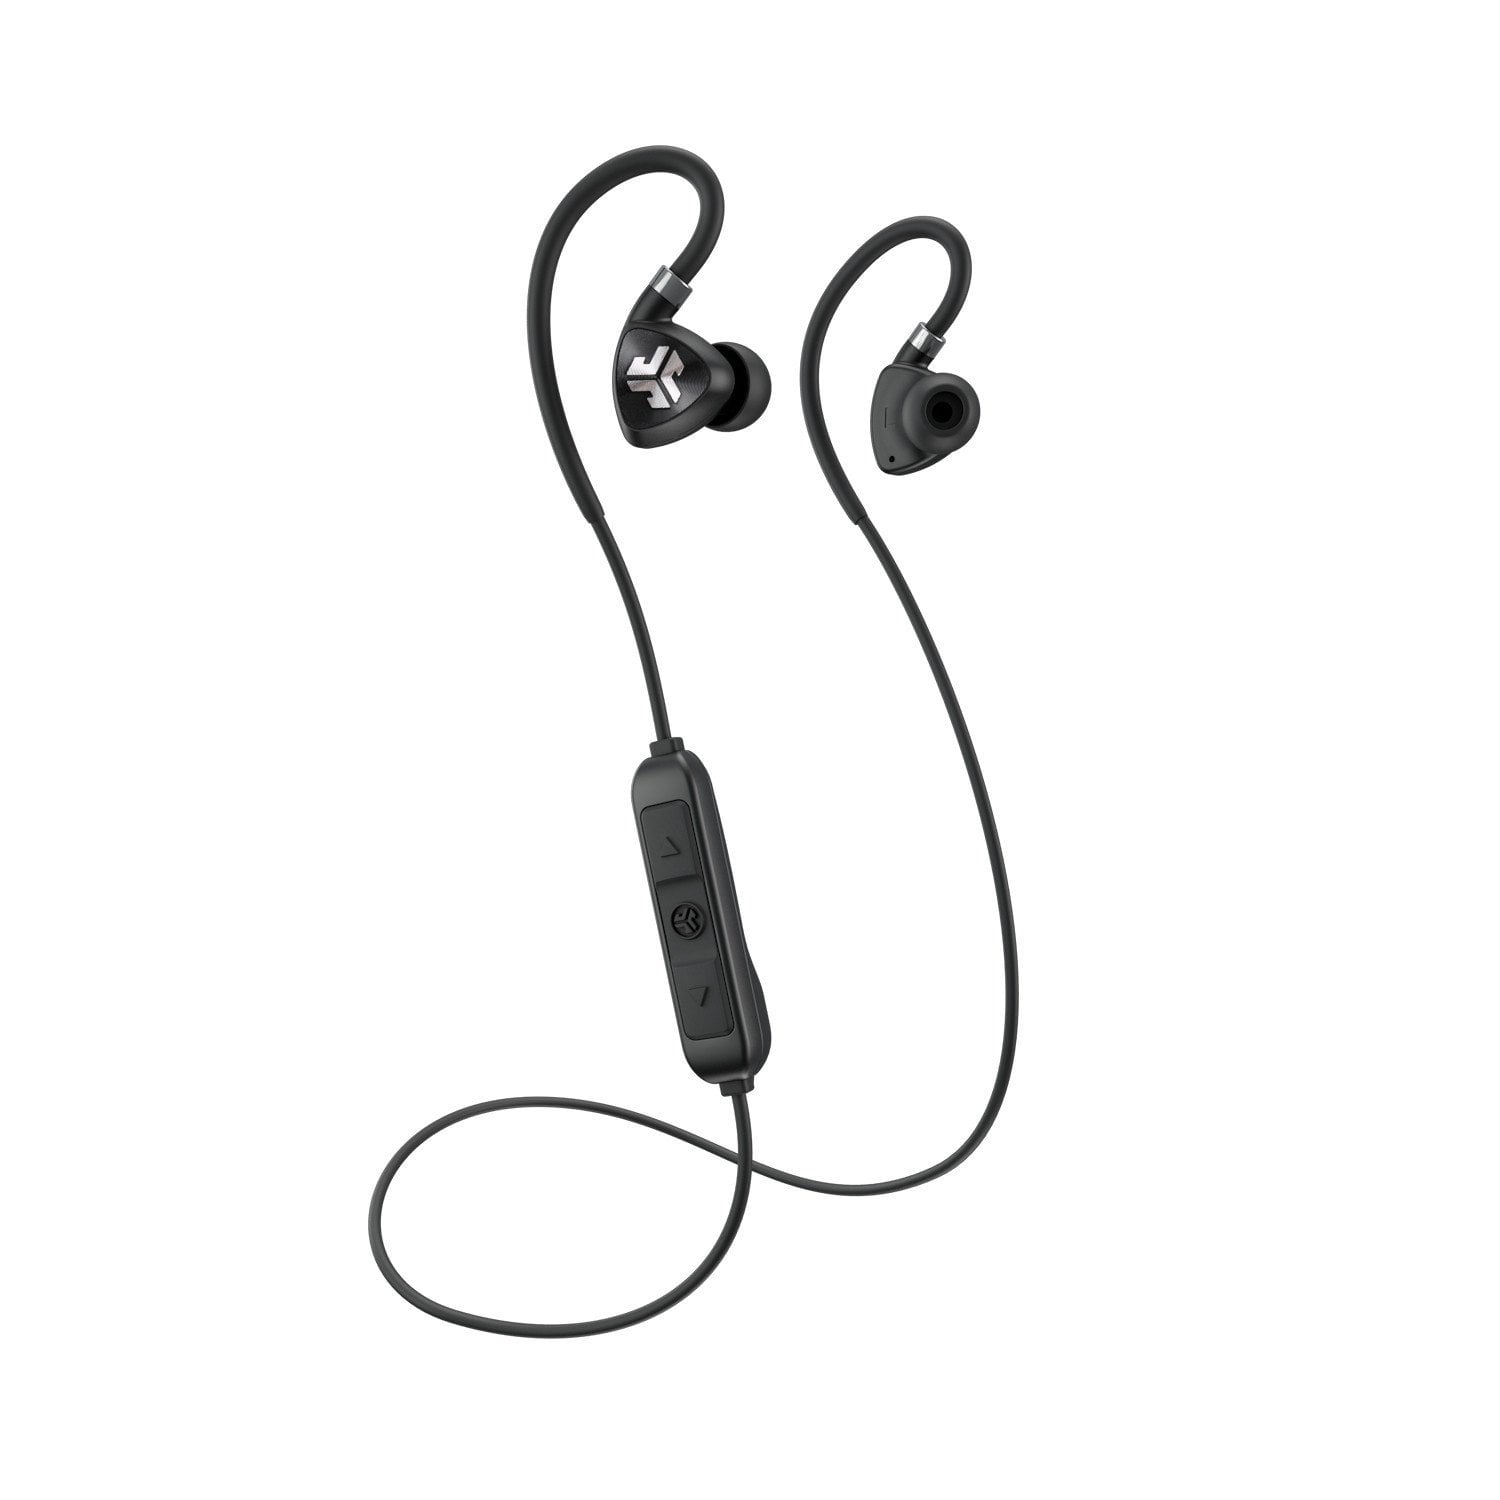 b87270c4118 JLab Audio Fit 2.0 Bluetooth Wireless Sport Earbuds - Black - Titanium 10mm  Drivers 6 Hour Battery Life Bluetooth 4.1 IP55 Sweat Proof Rating Extra Gel  Tips ...